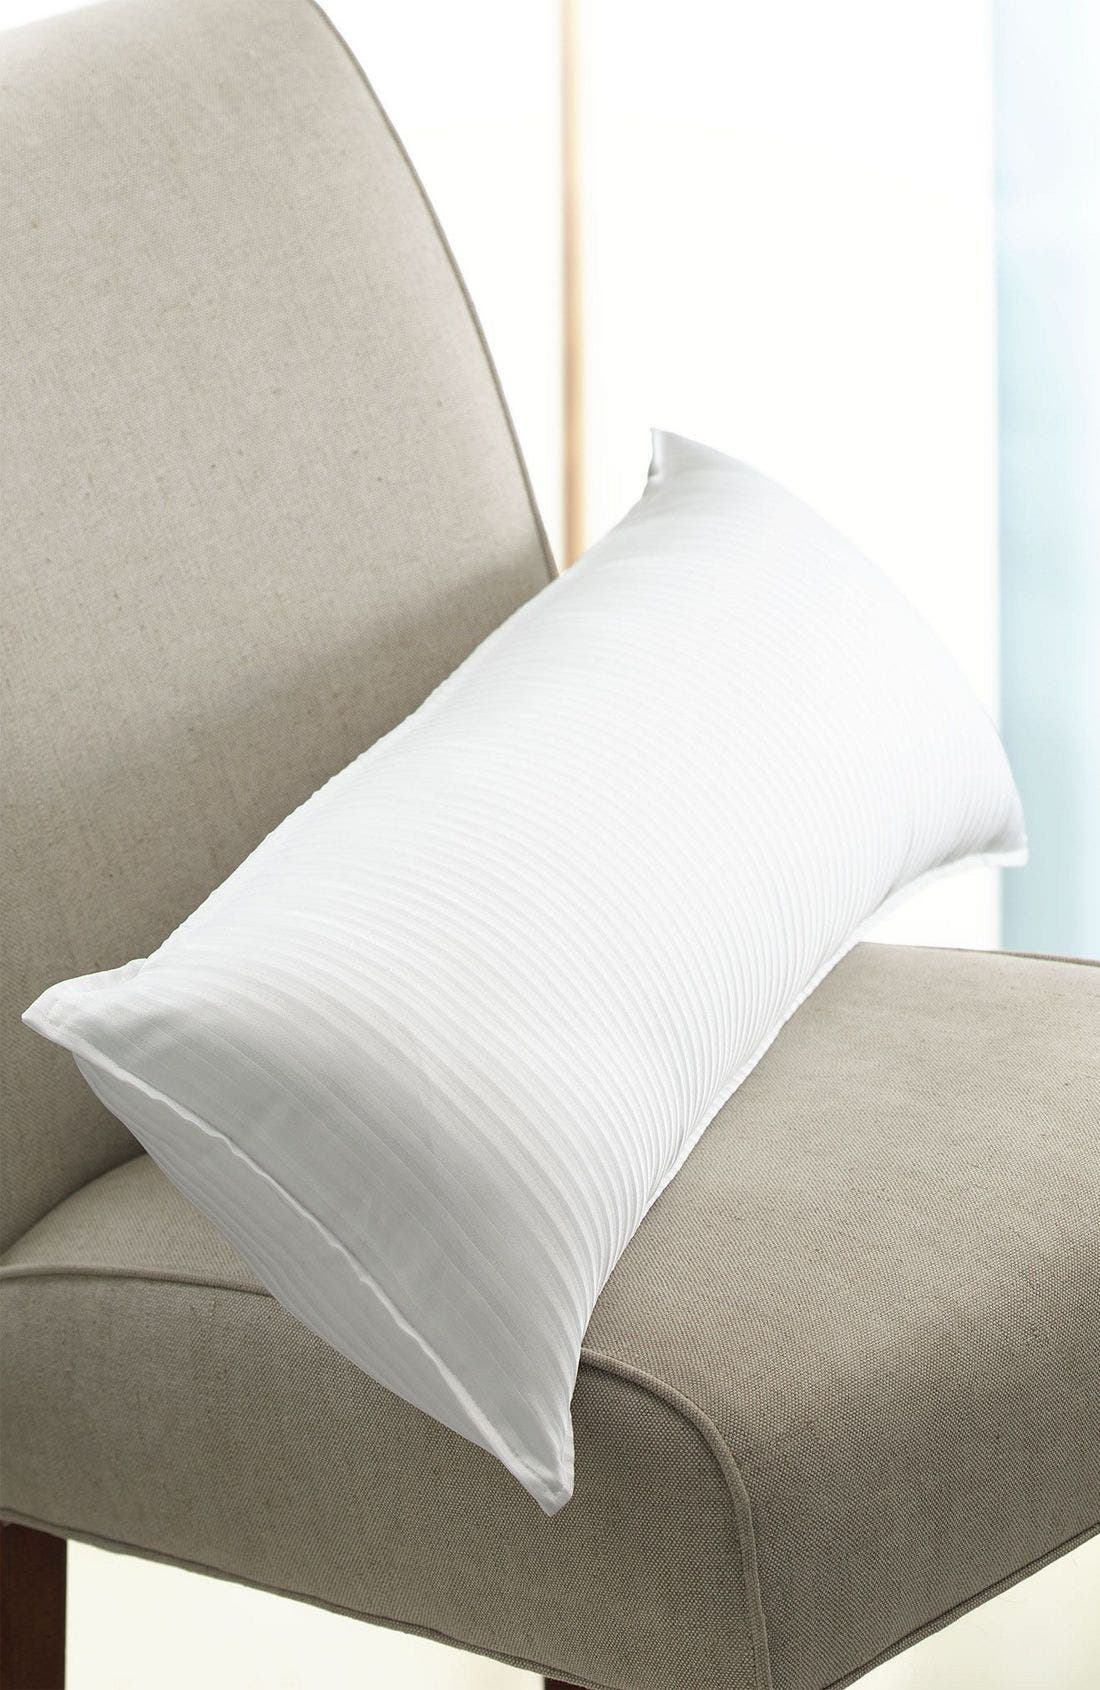 Westin At Home Pillow & Cover